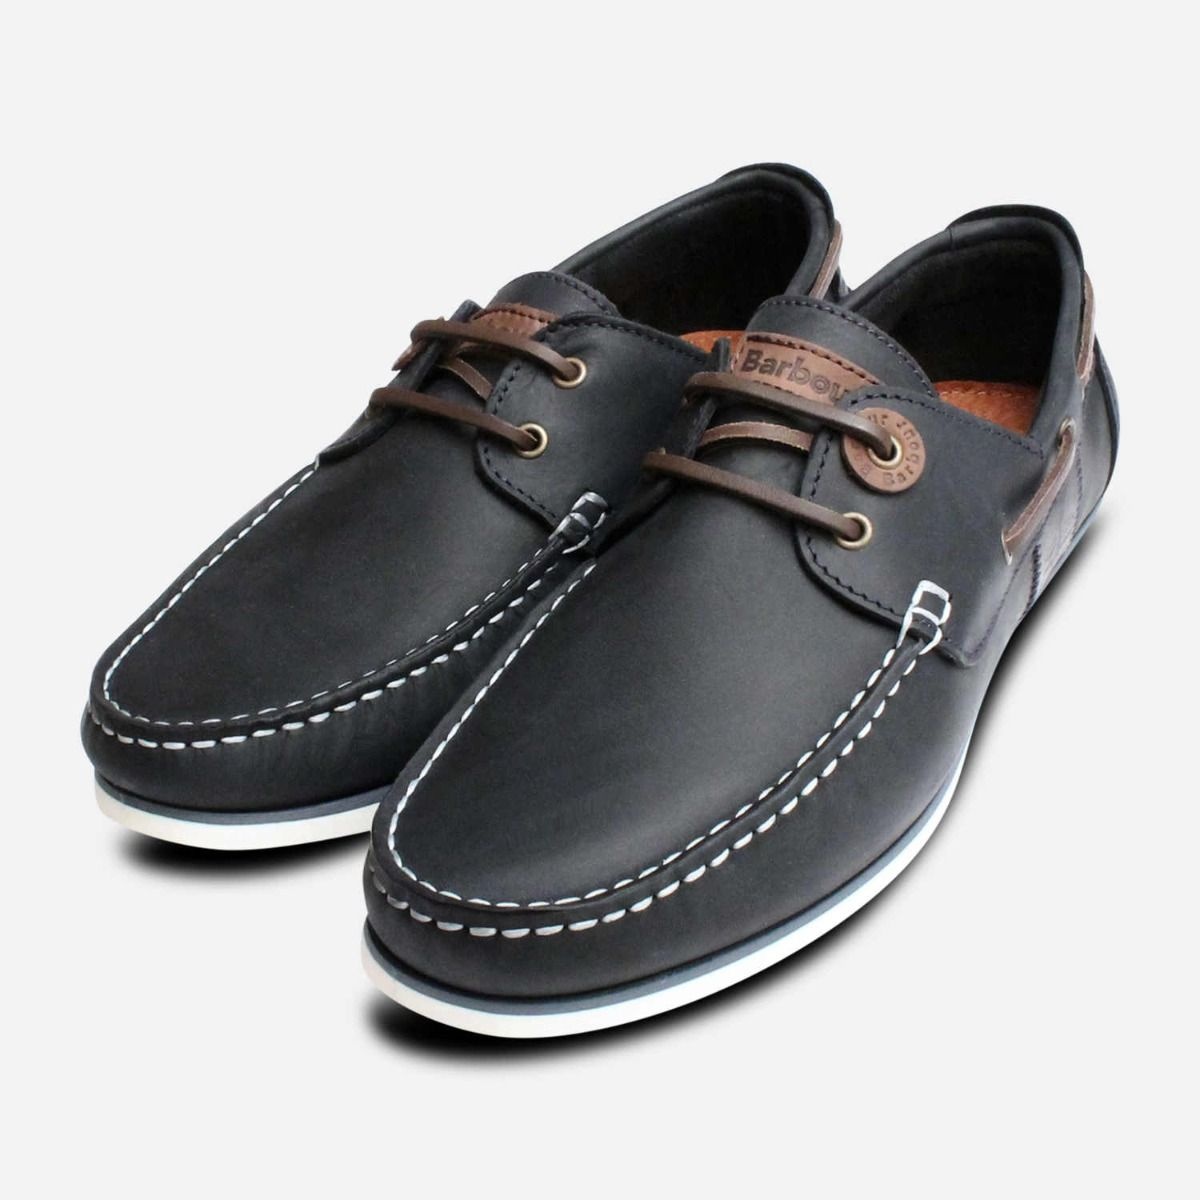 c21f5eb16311 Barbour Capstan Navy Blue   White Boat Shoes